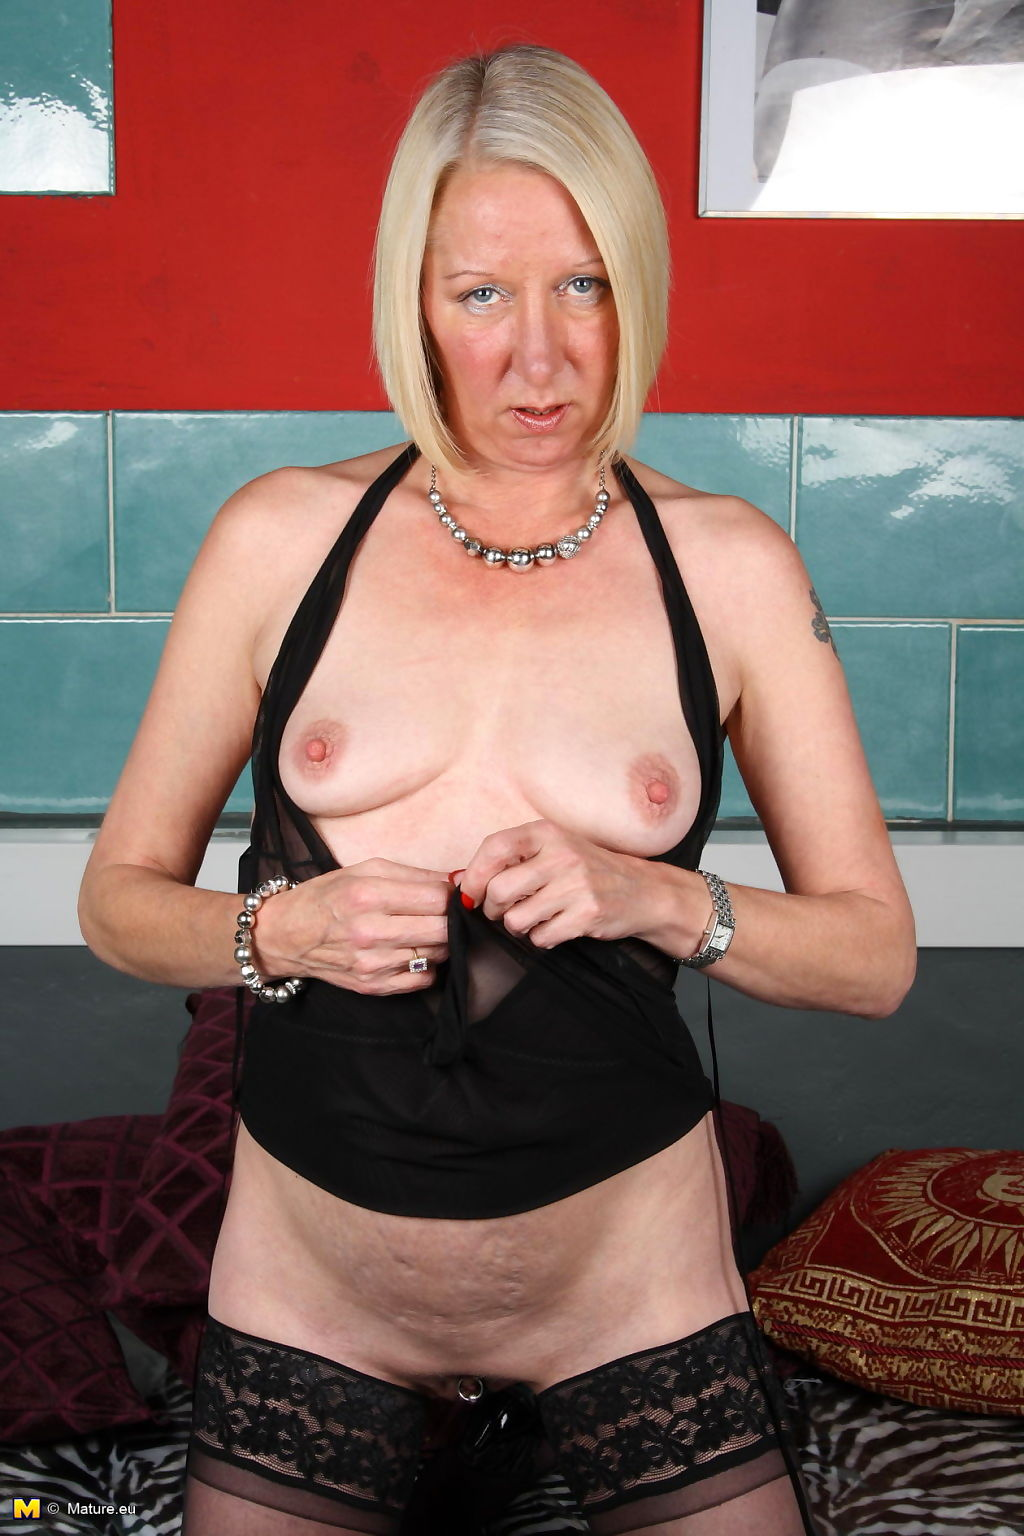 Horny blonde mature slut going all the way - part 2139